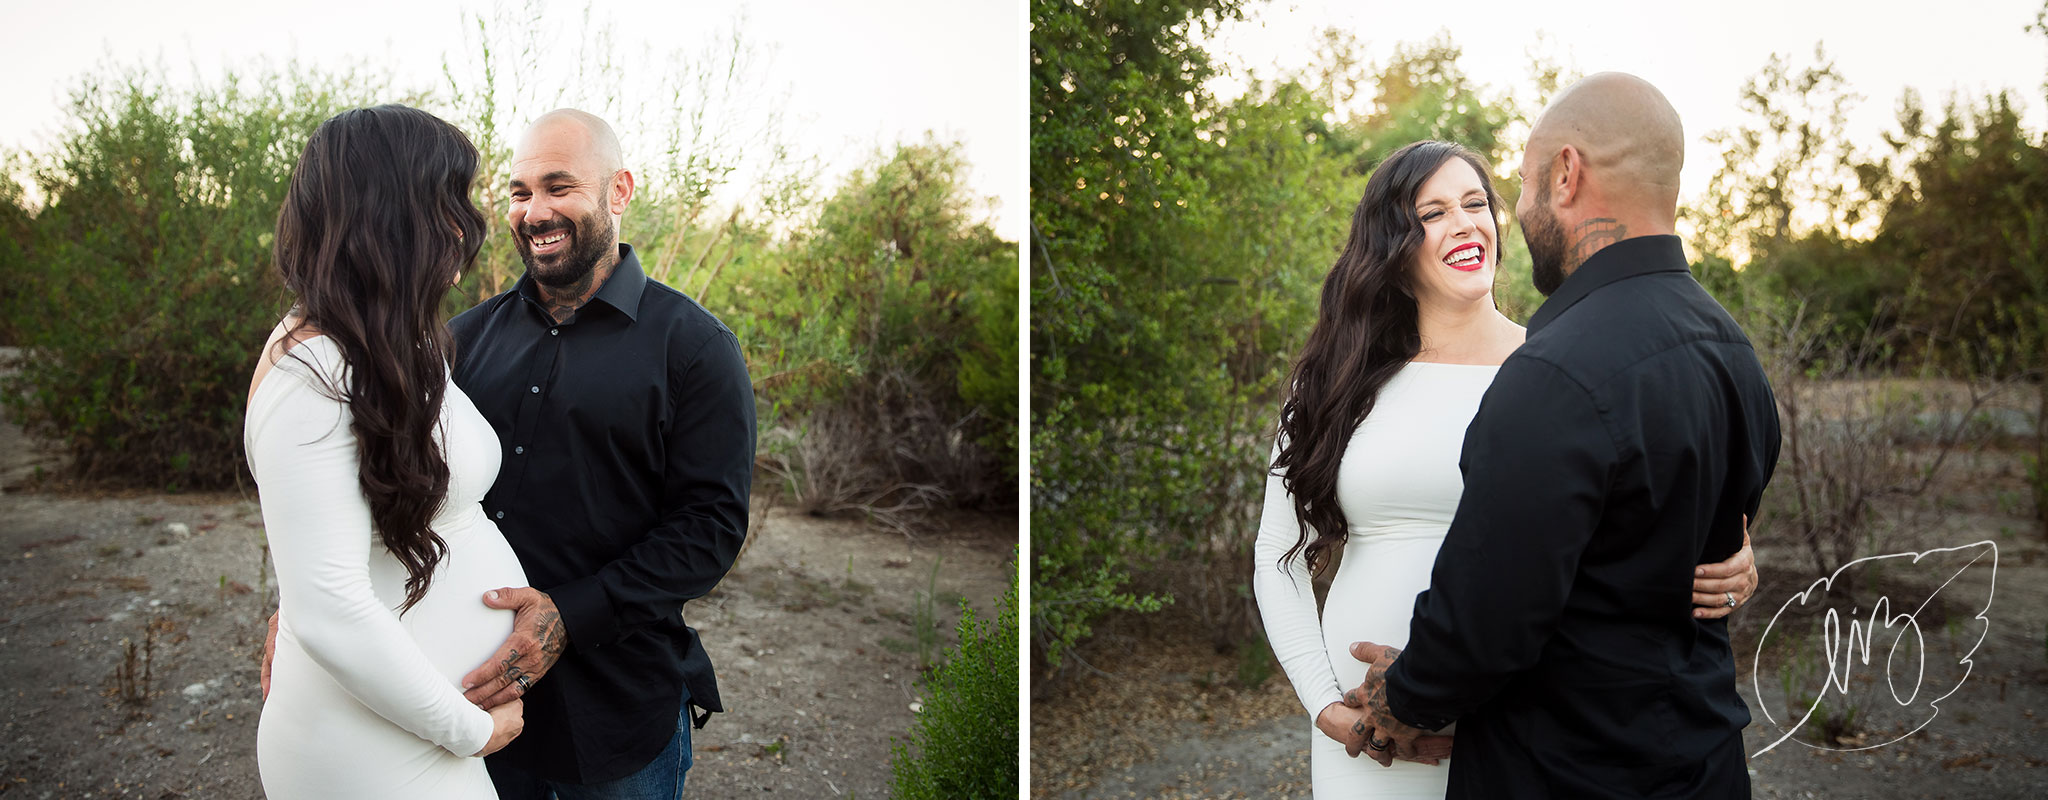 Inland_Empire_Maternity_Photographer_13.jpg